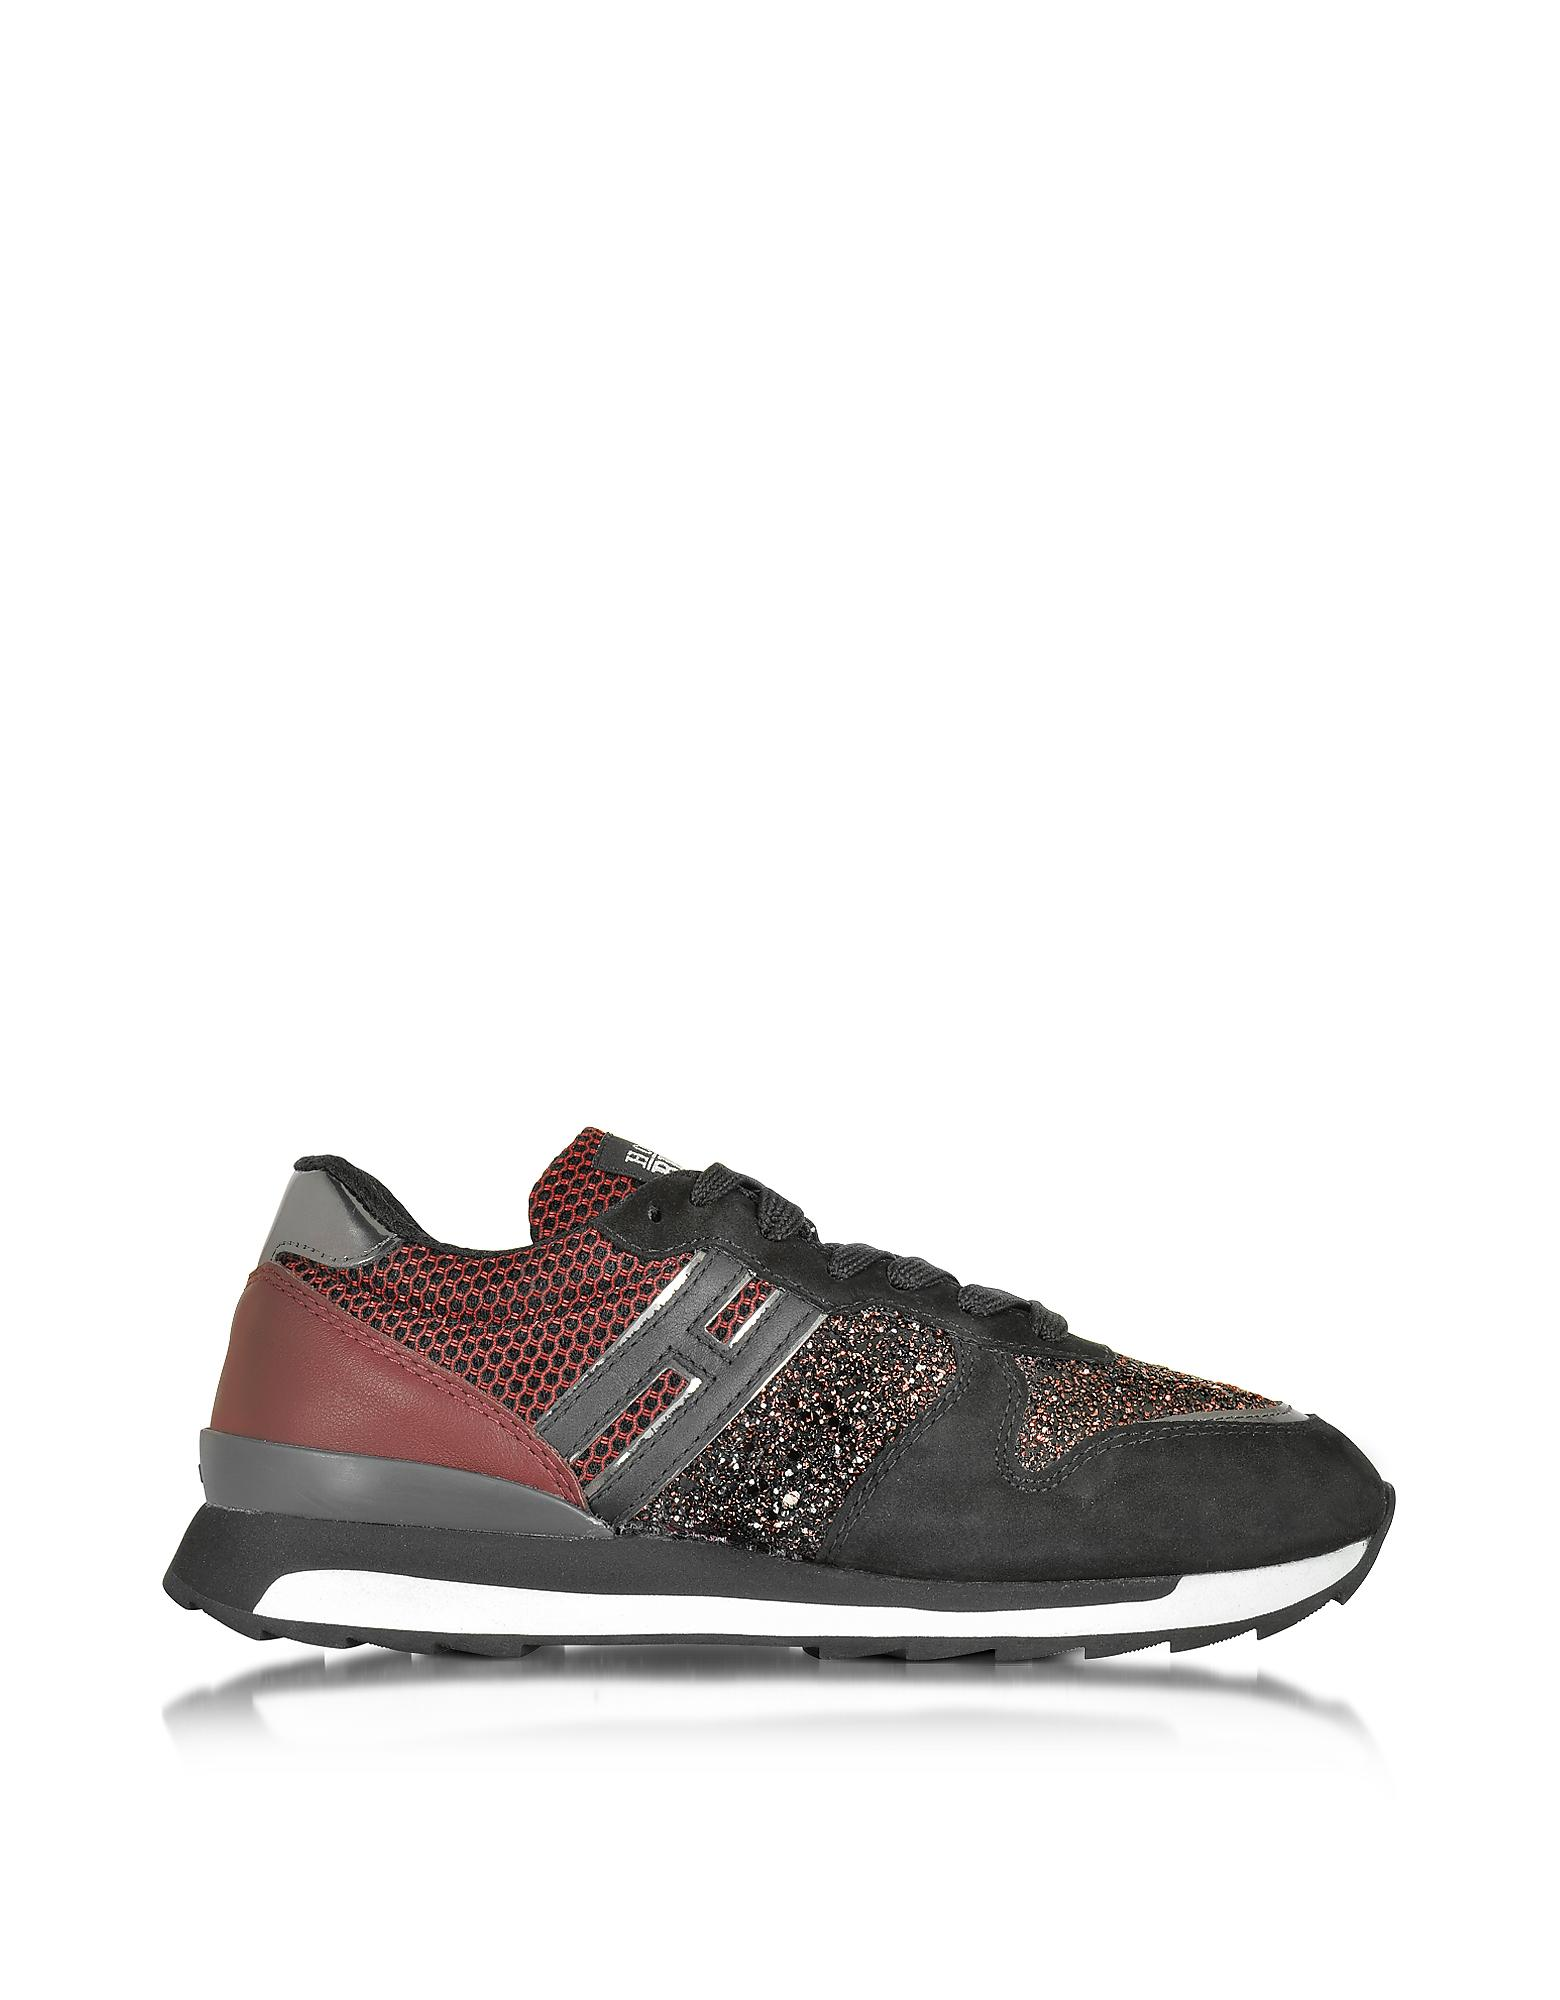 Forzieri Hogan Lyst Hogan Rebel Running R261 Black And Burgundy Suede